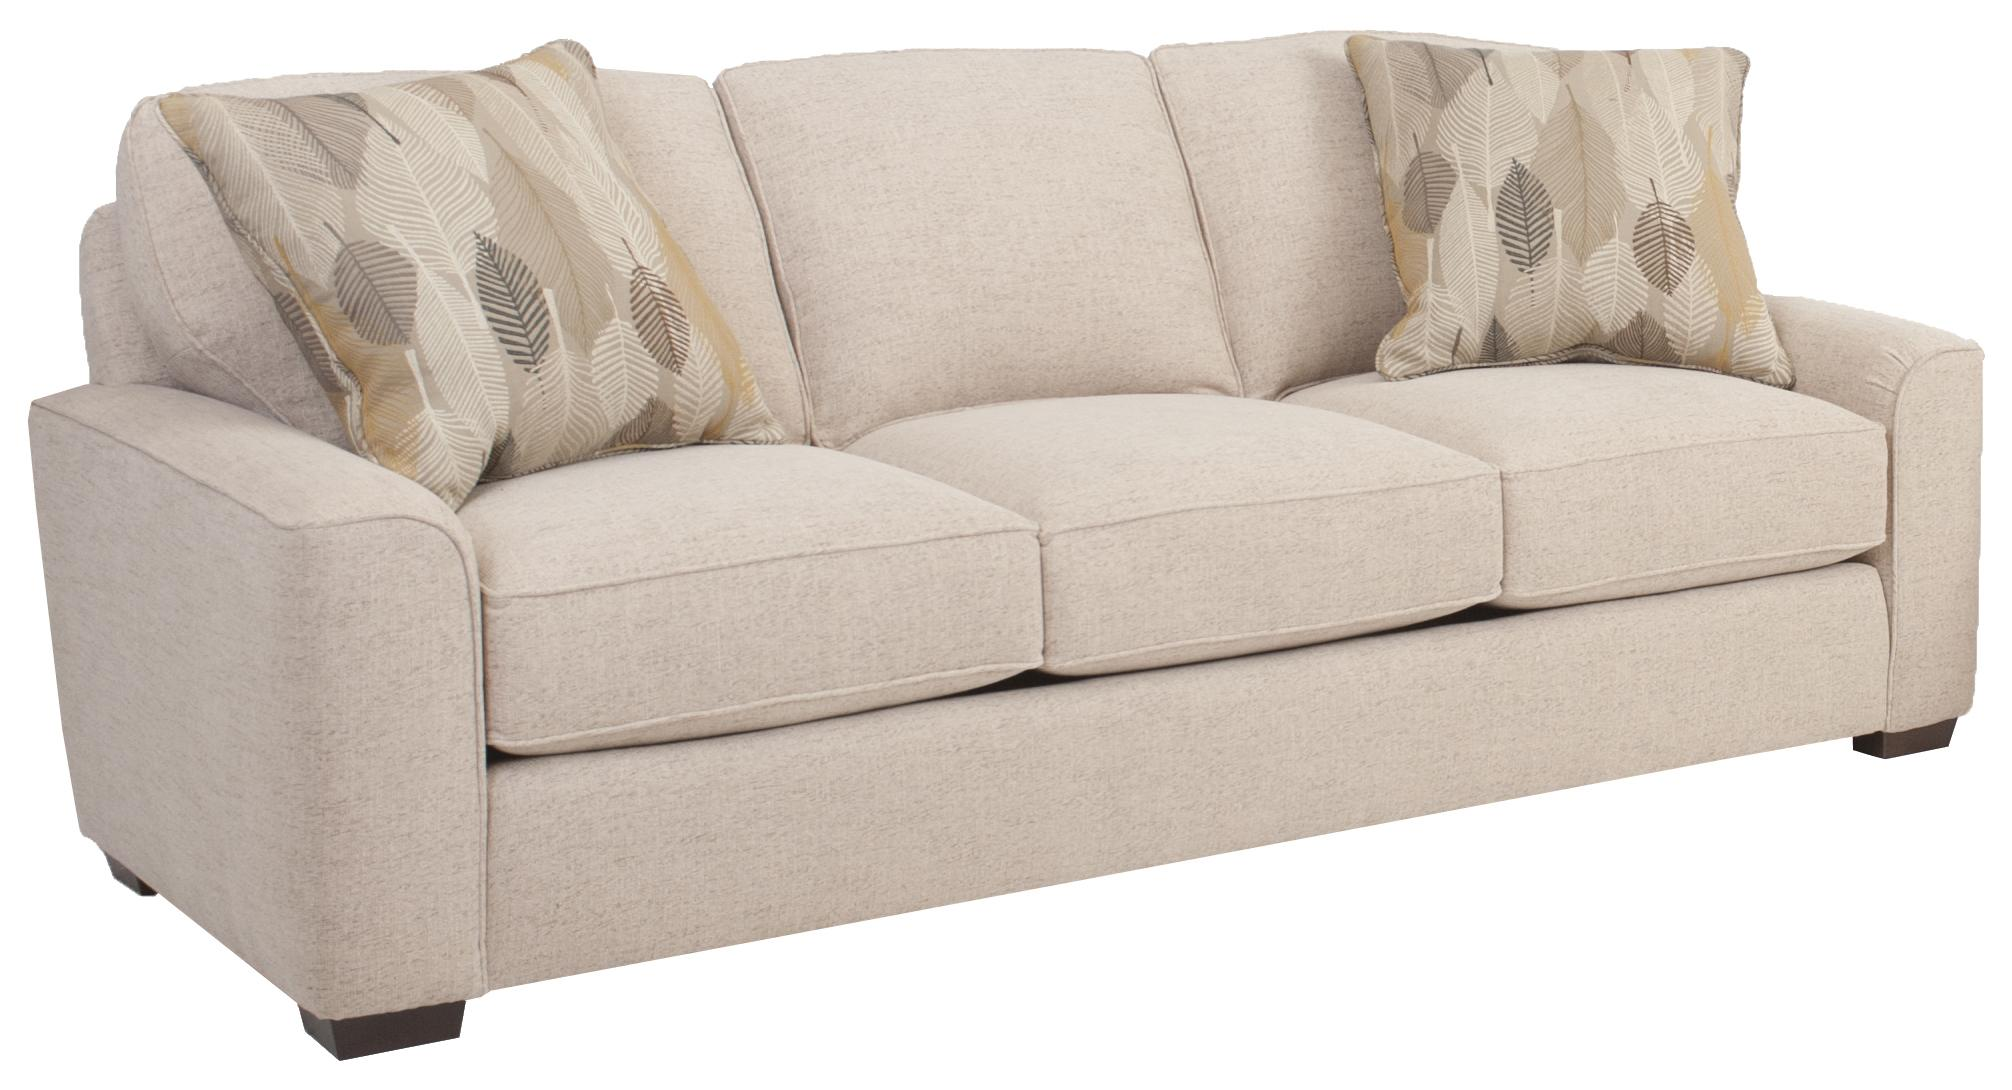 Build Your Own (8000 Series) Sofa by Smith Brothers at Mueller Furniture